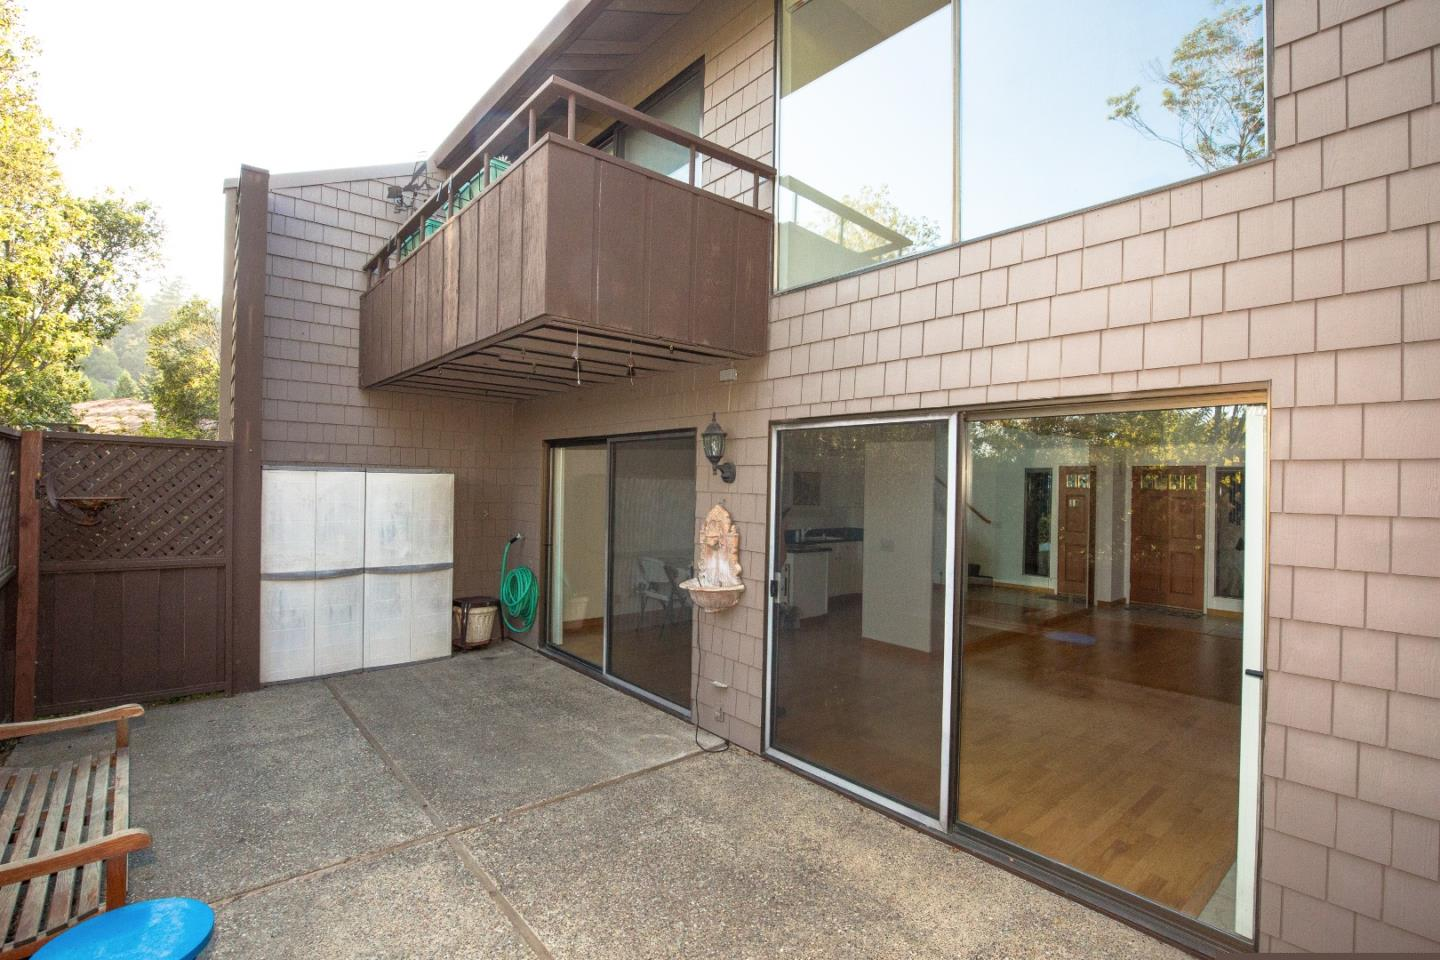 Additional photo for property listing at 5525 Scotts Valley Drive  Scotts Valley, カリフォルニア 95066 アメリカ合衆国